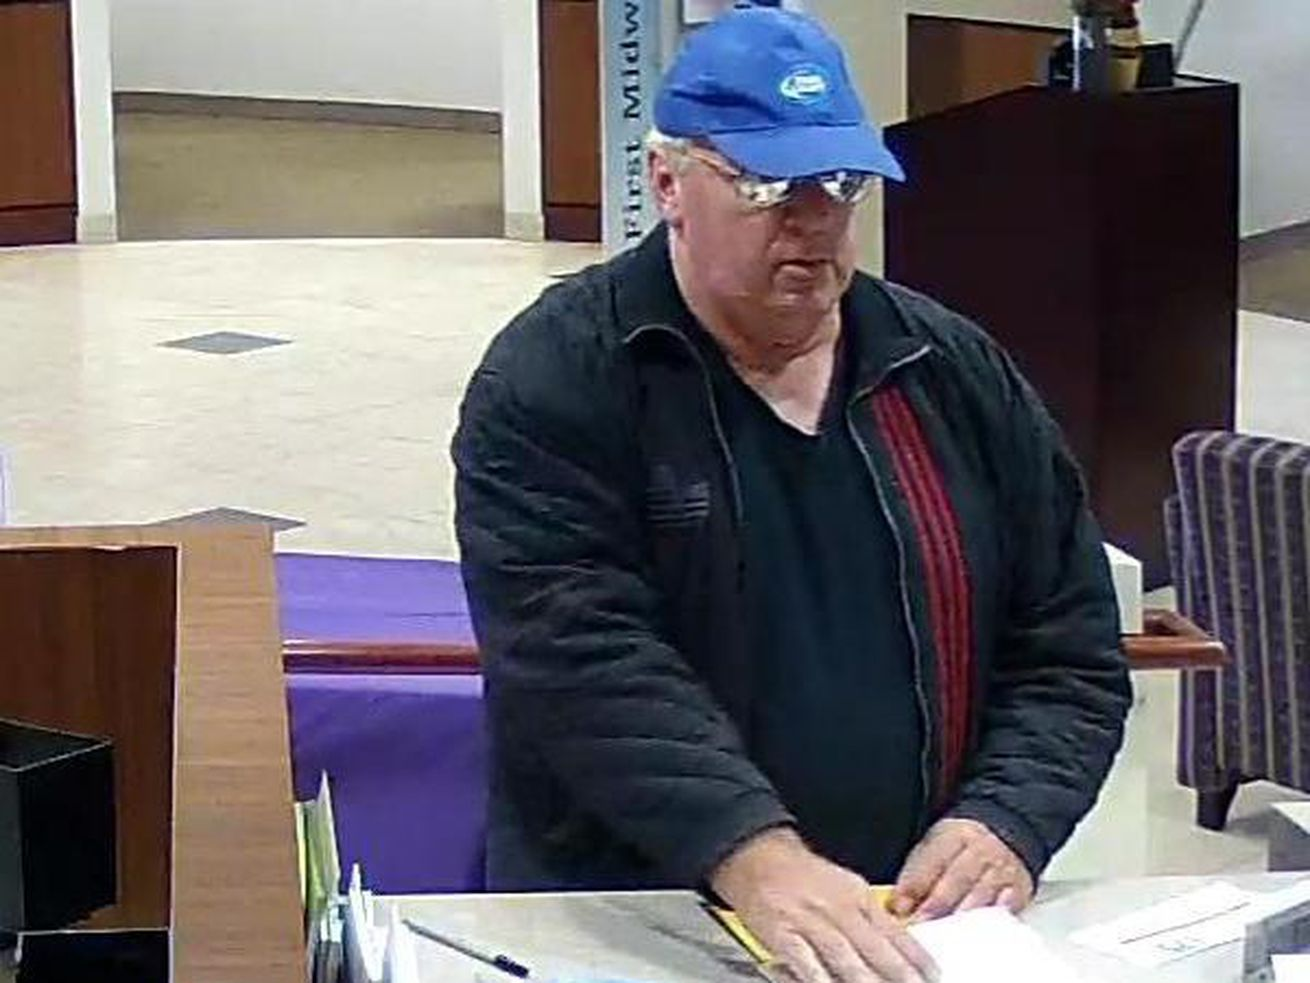 The FBI says this man robbed a bank in Joliet on Sept. 19, 2019. | FBI